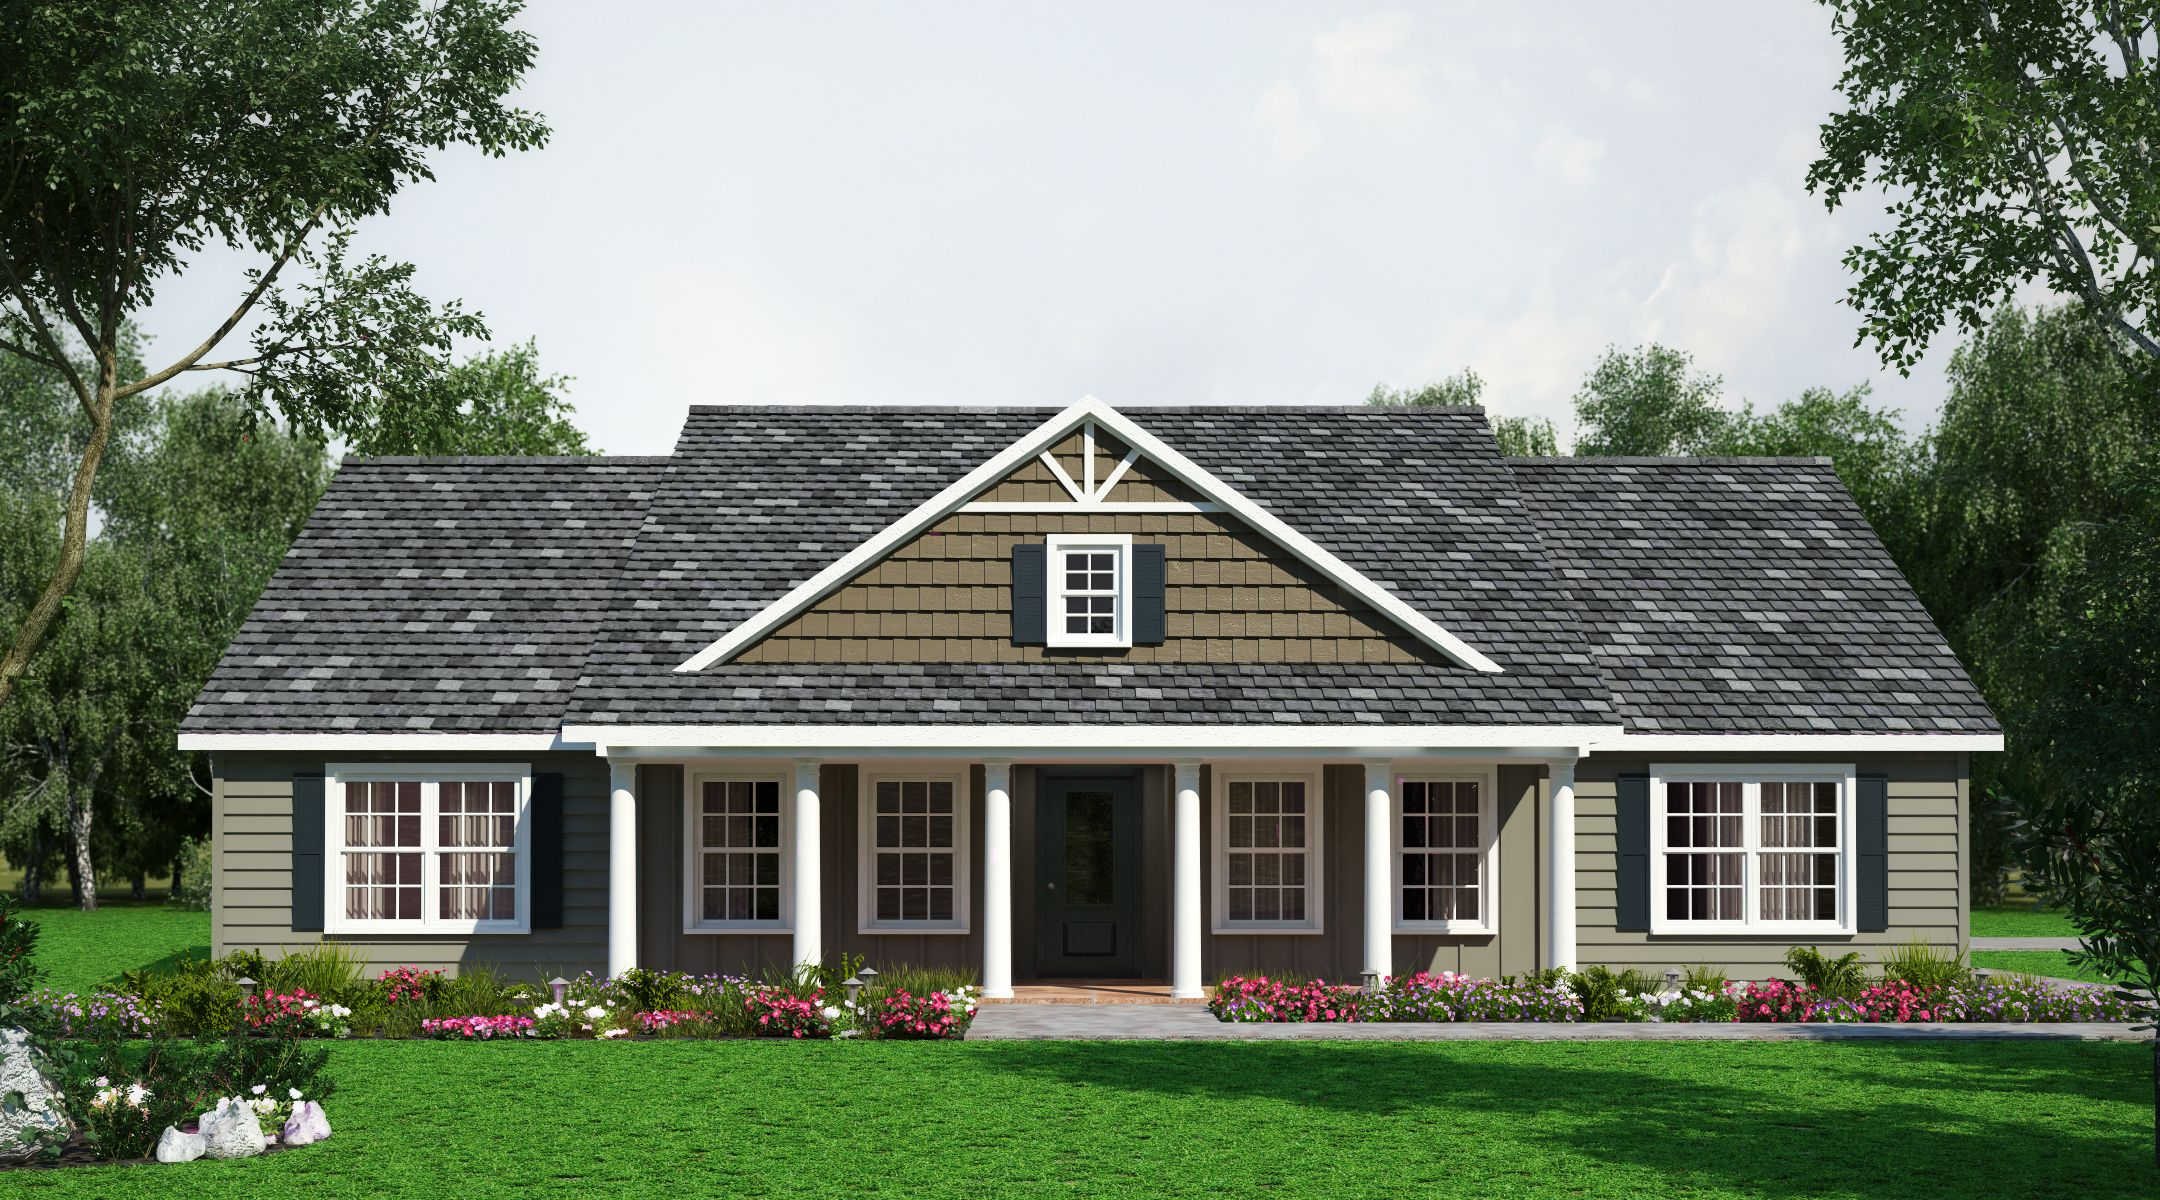 Country Style Modular Home Floor Plans | Flisol Home